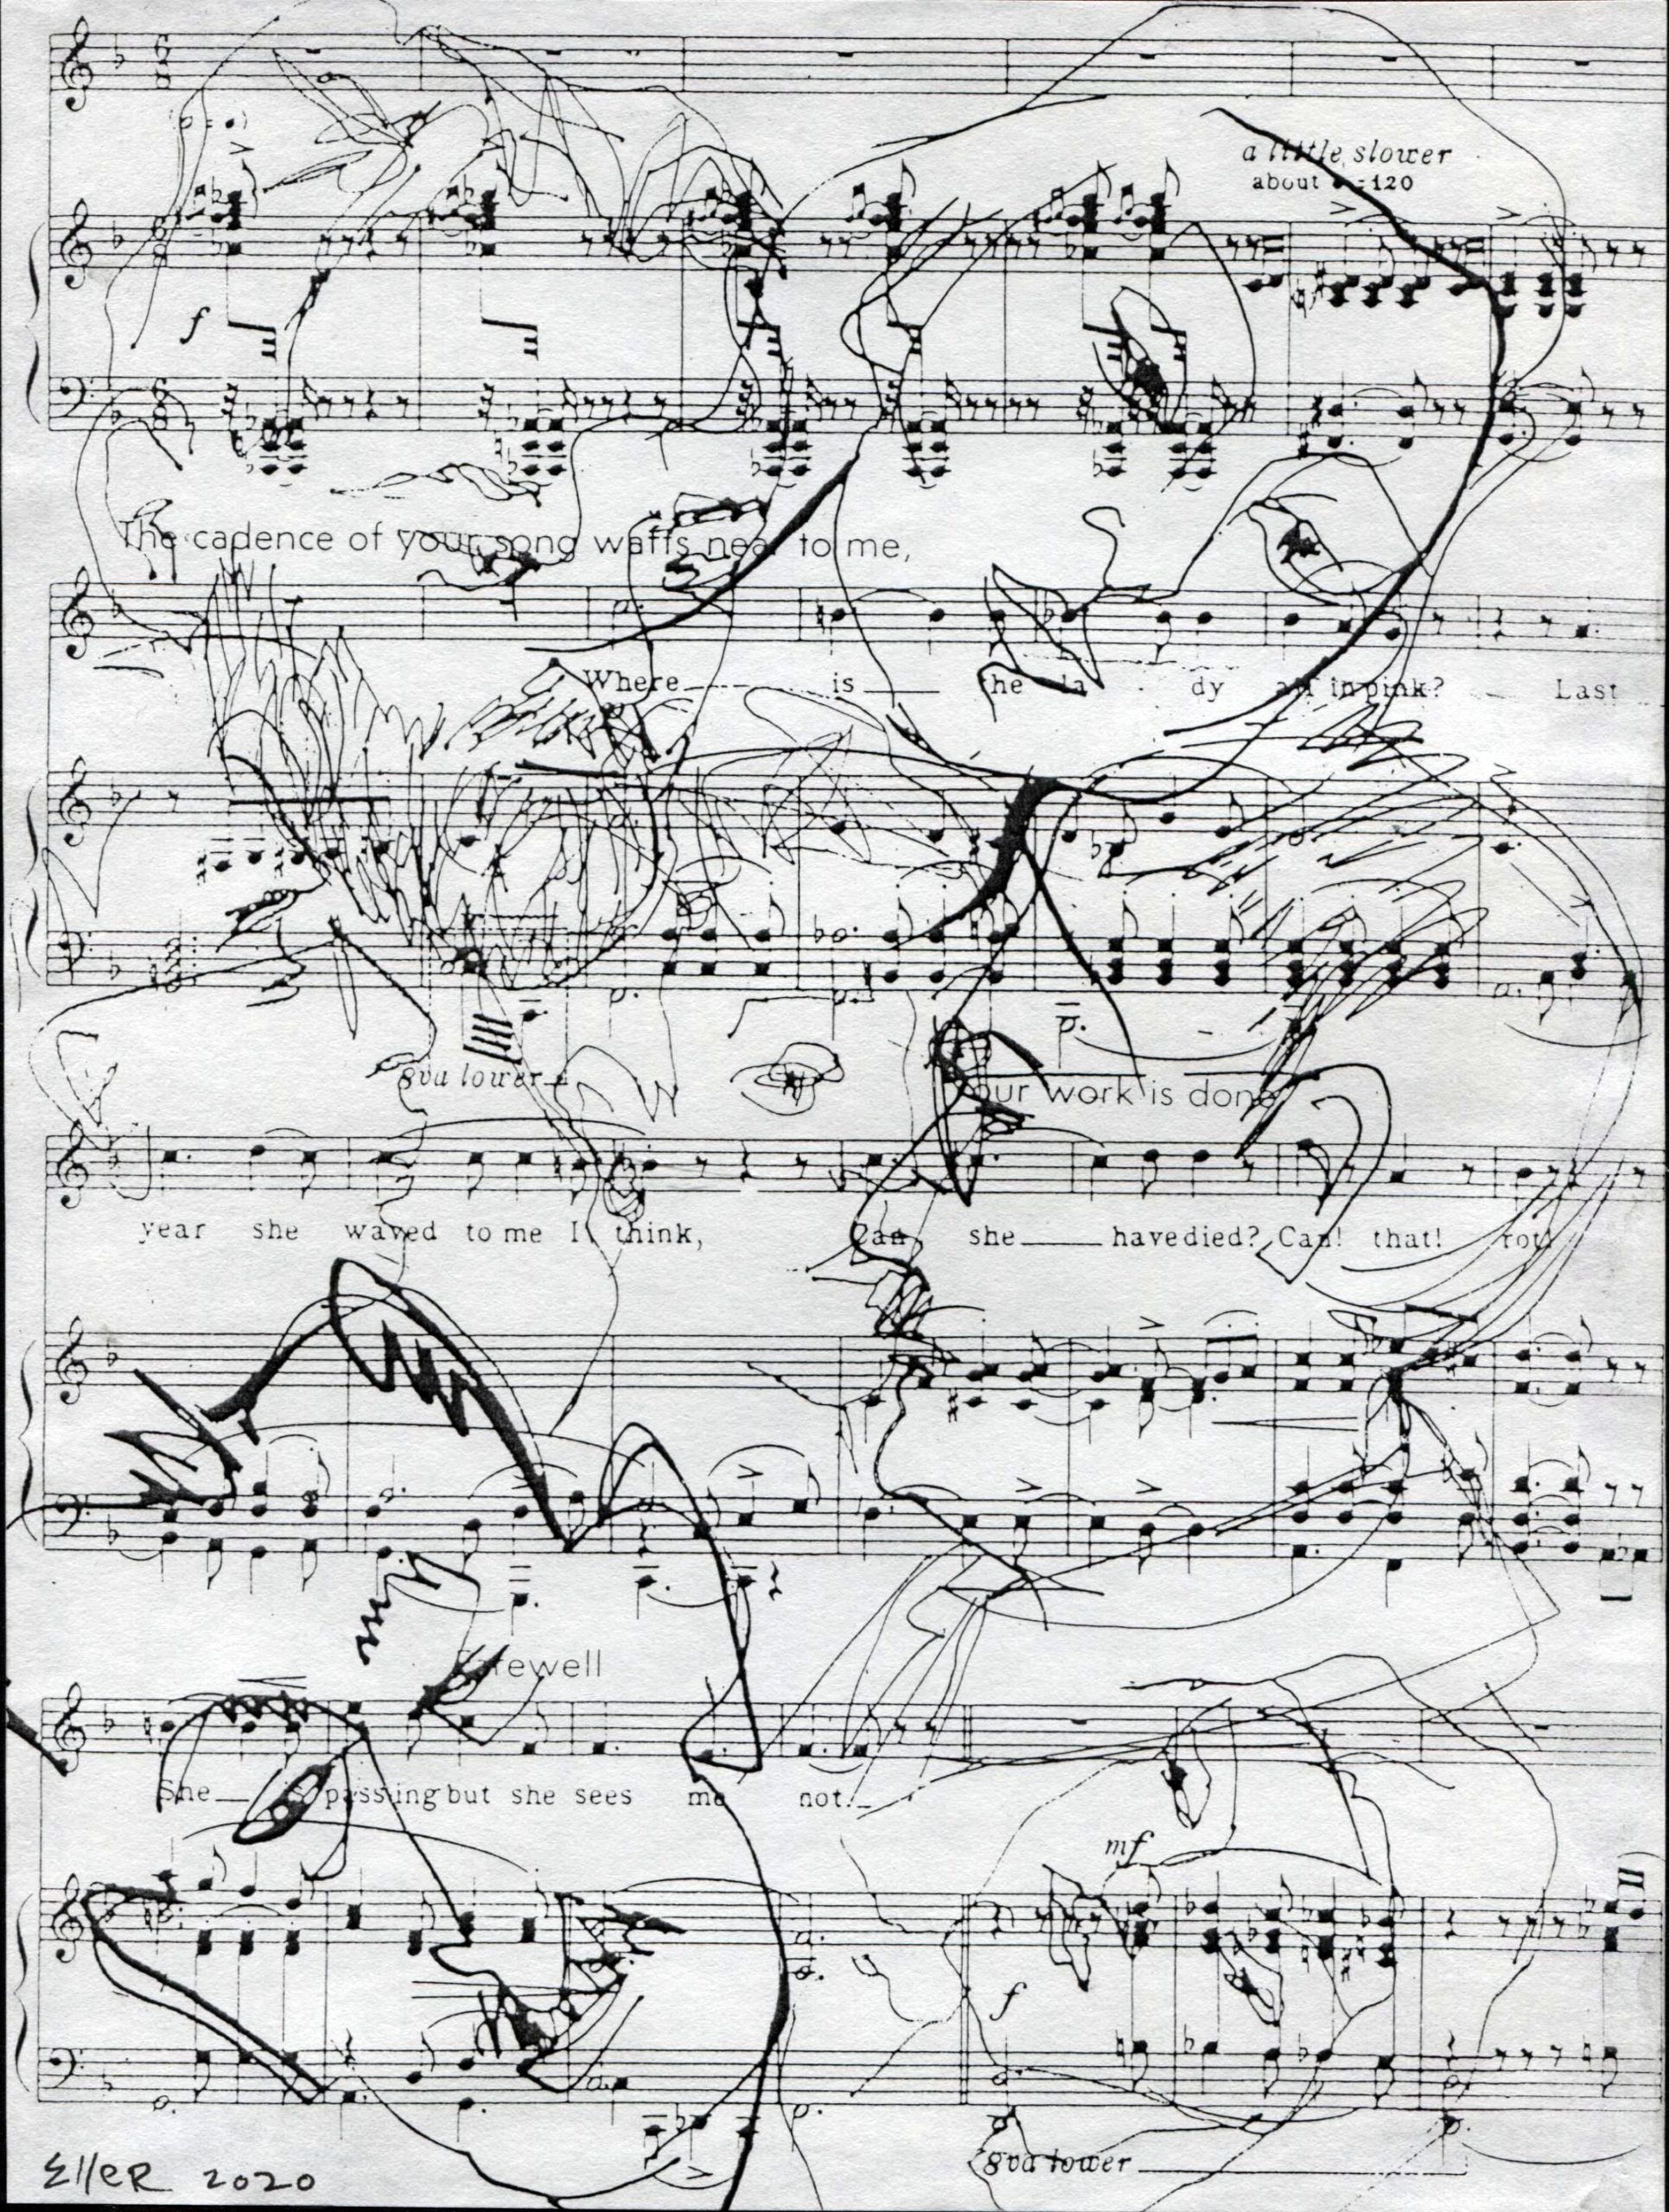 drawing of two figures on top of musical notations